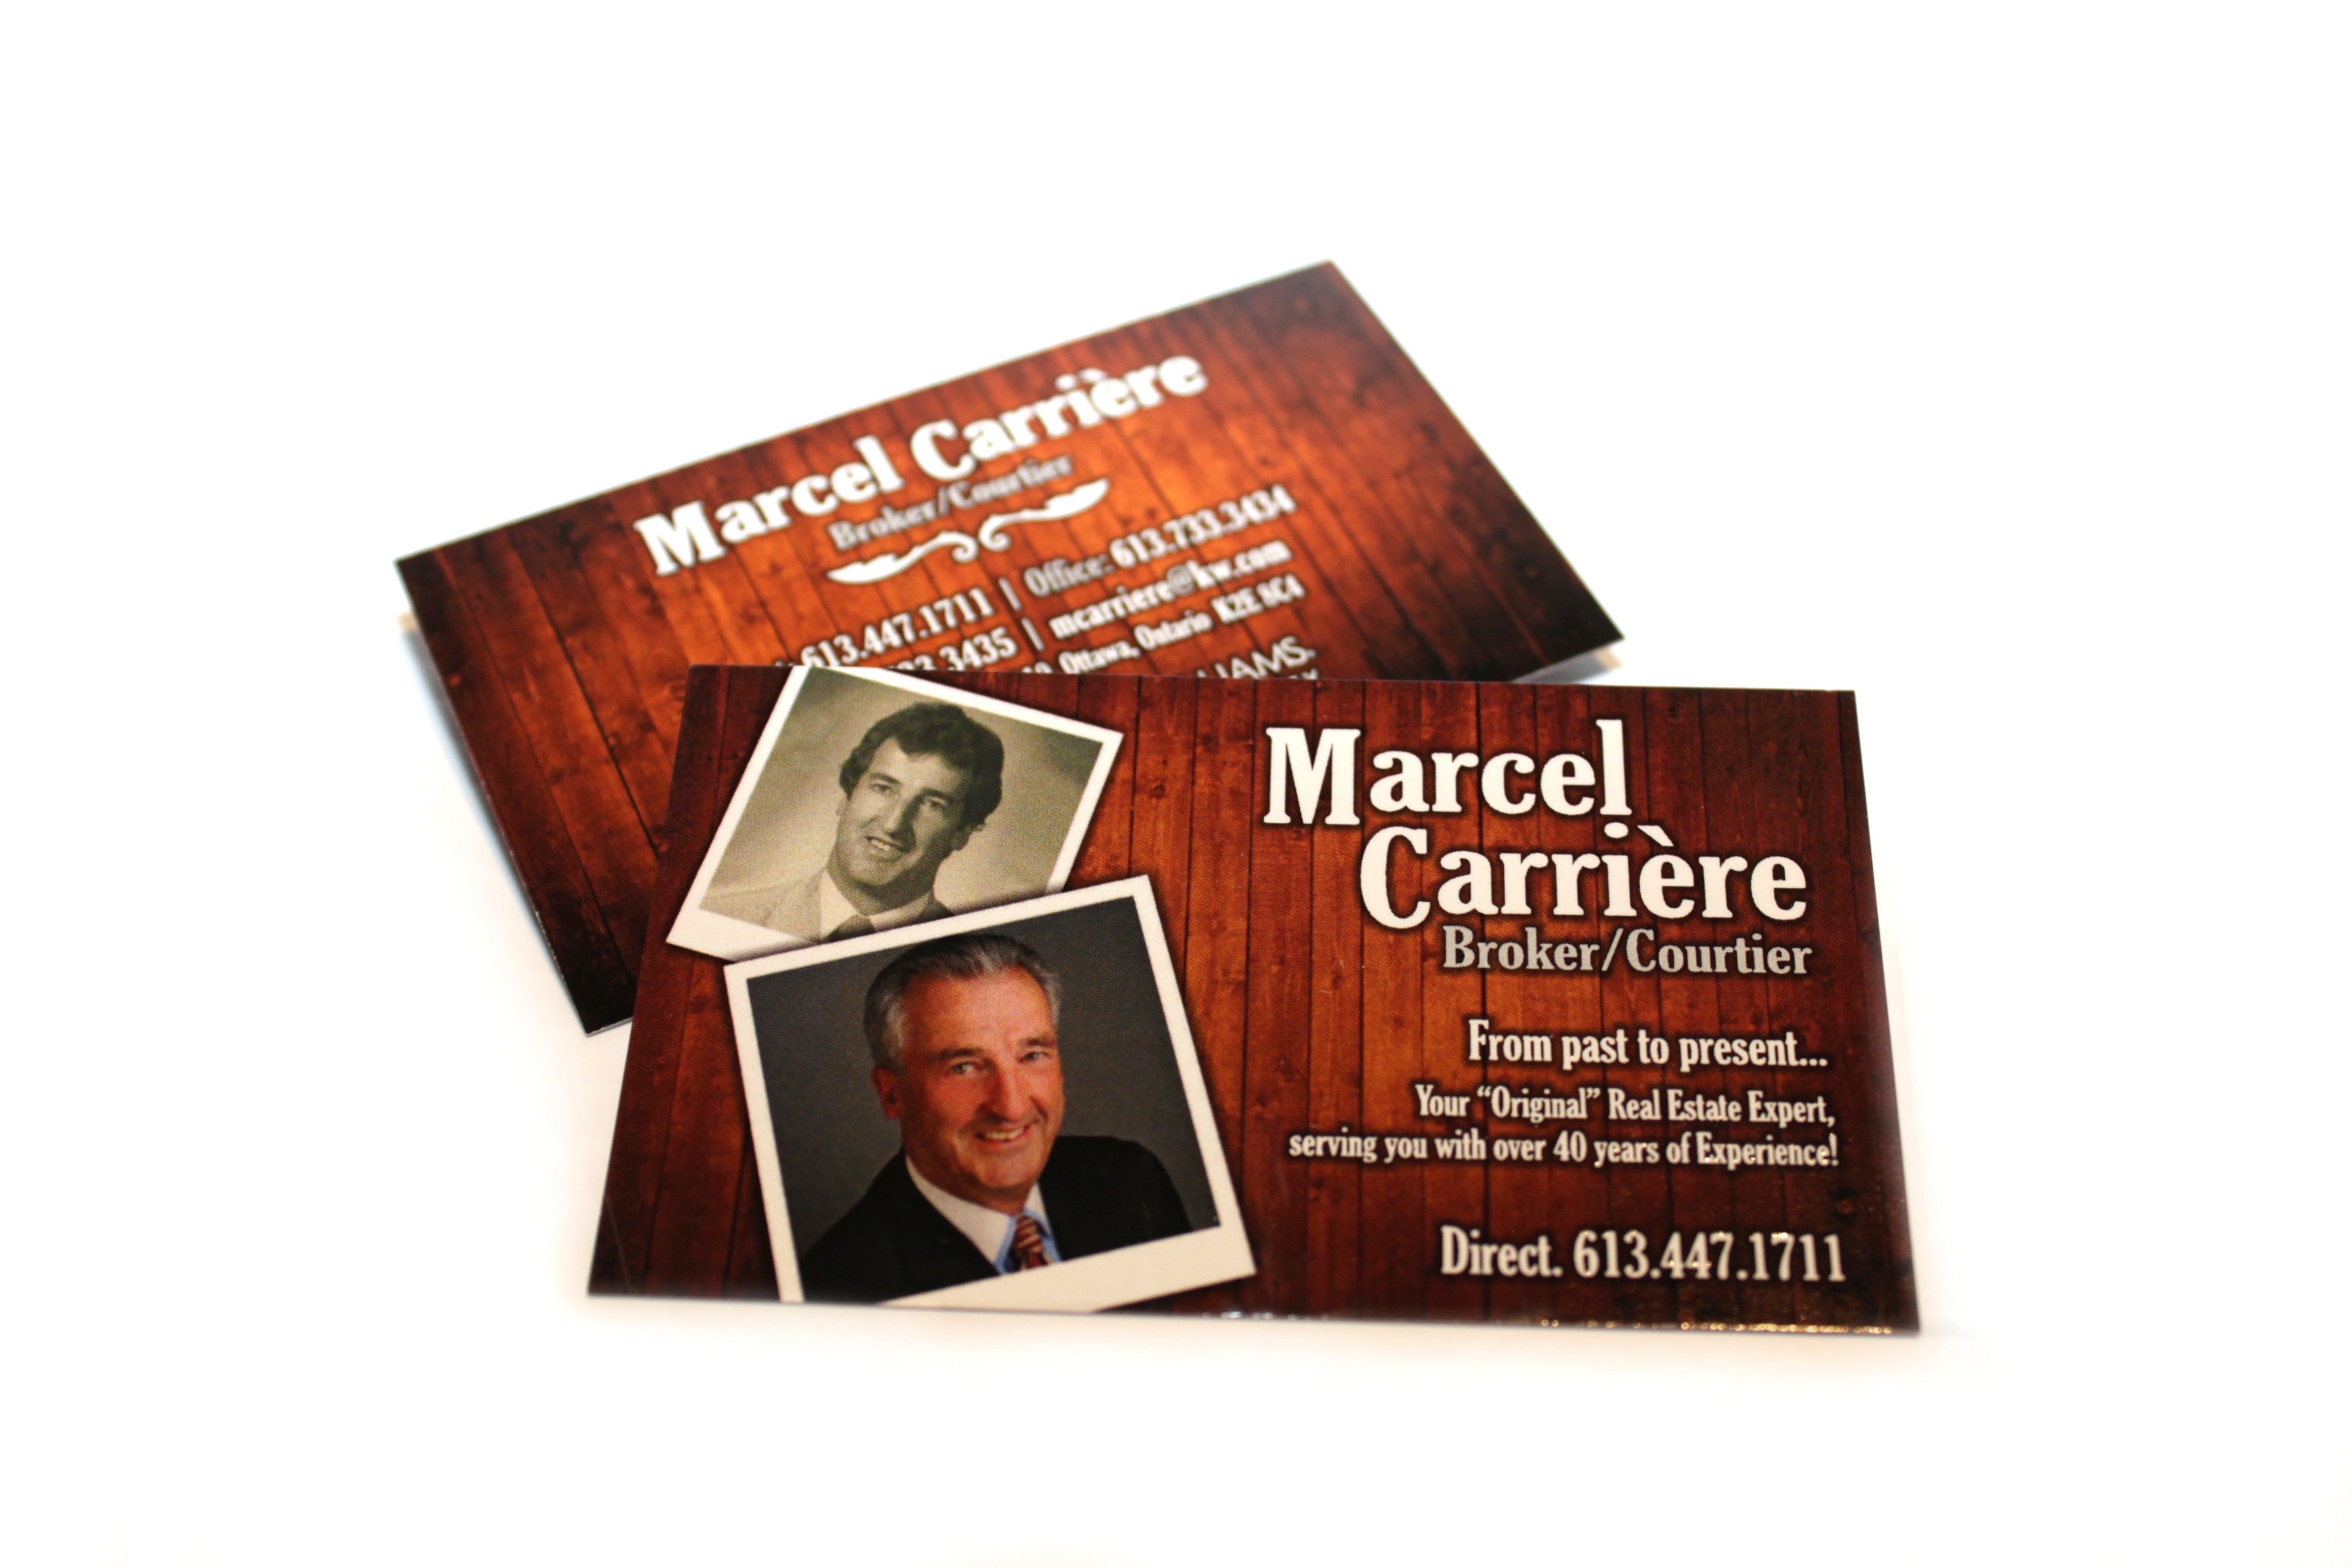 Marcel Carriere